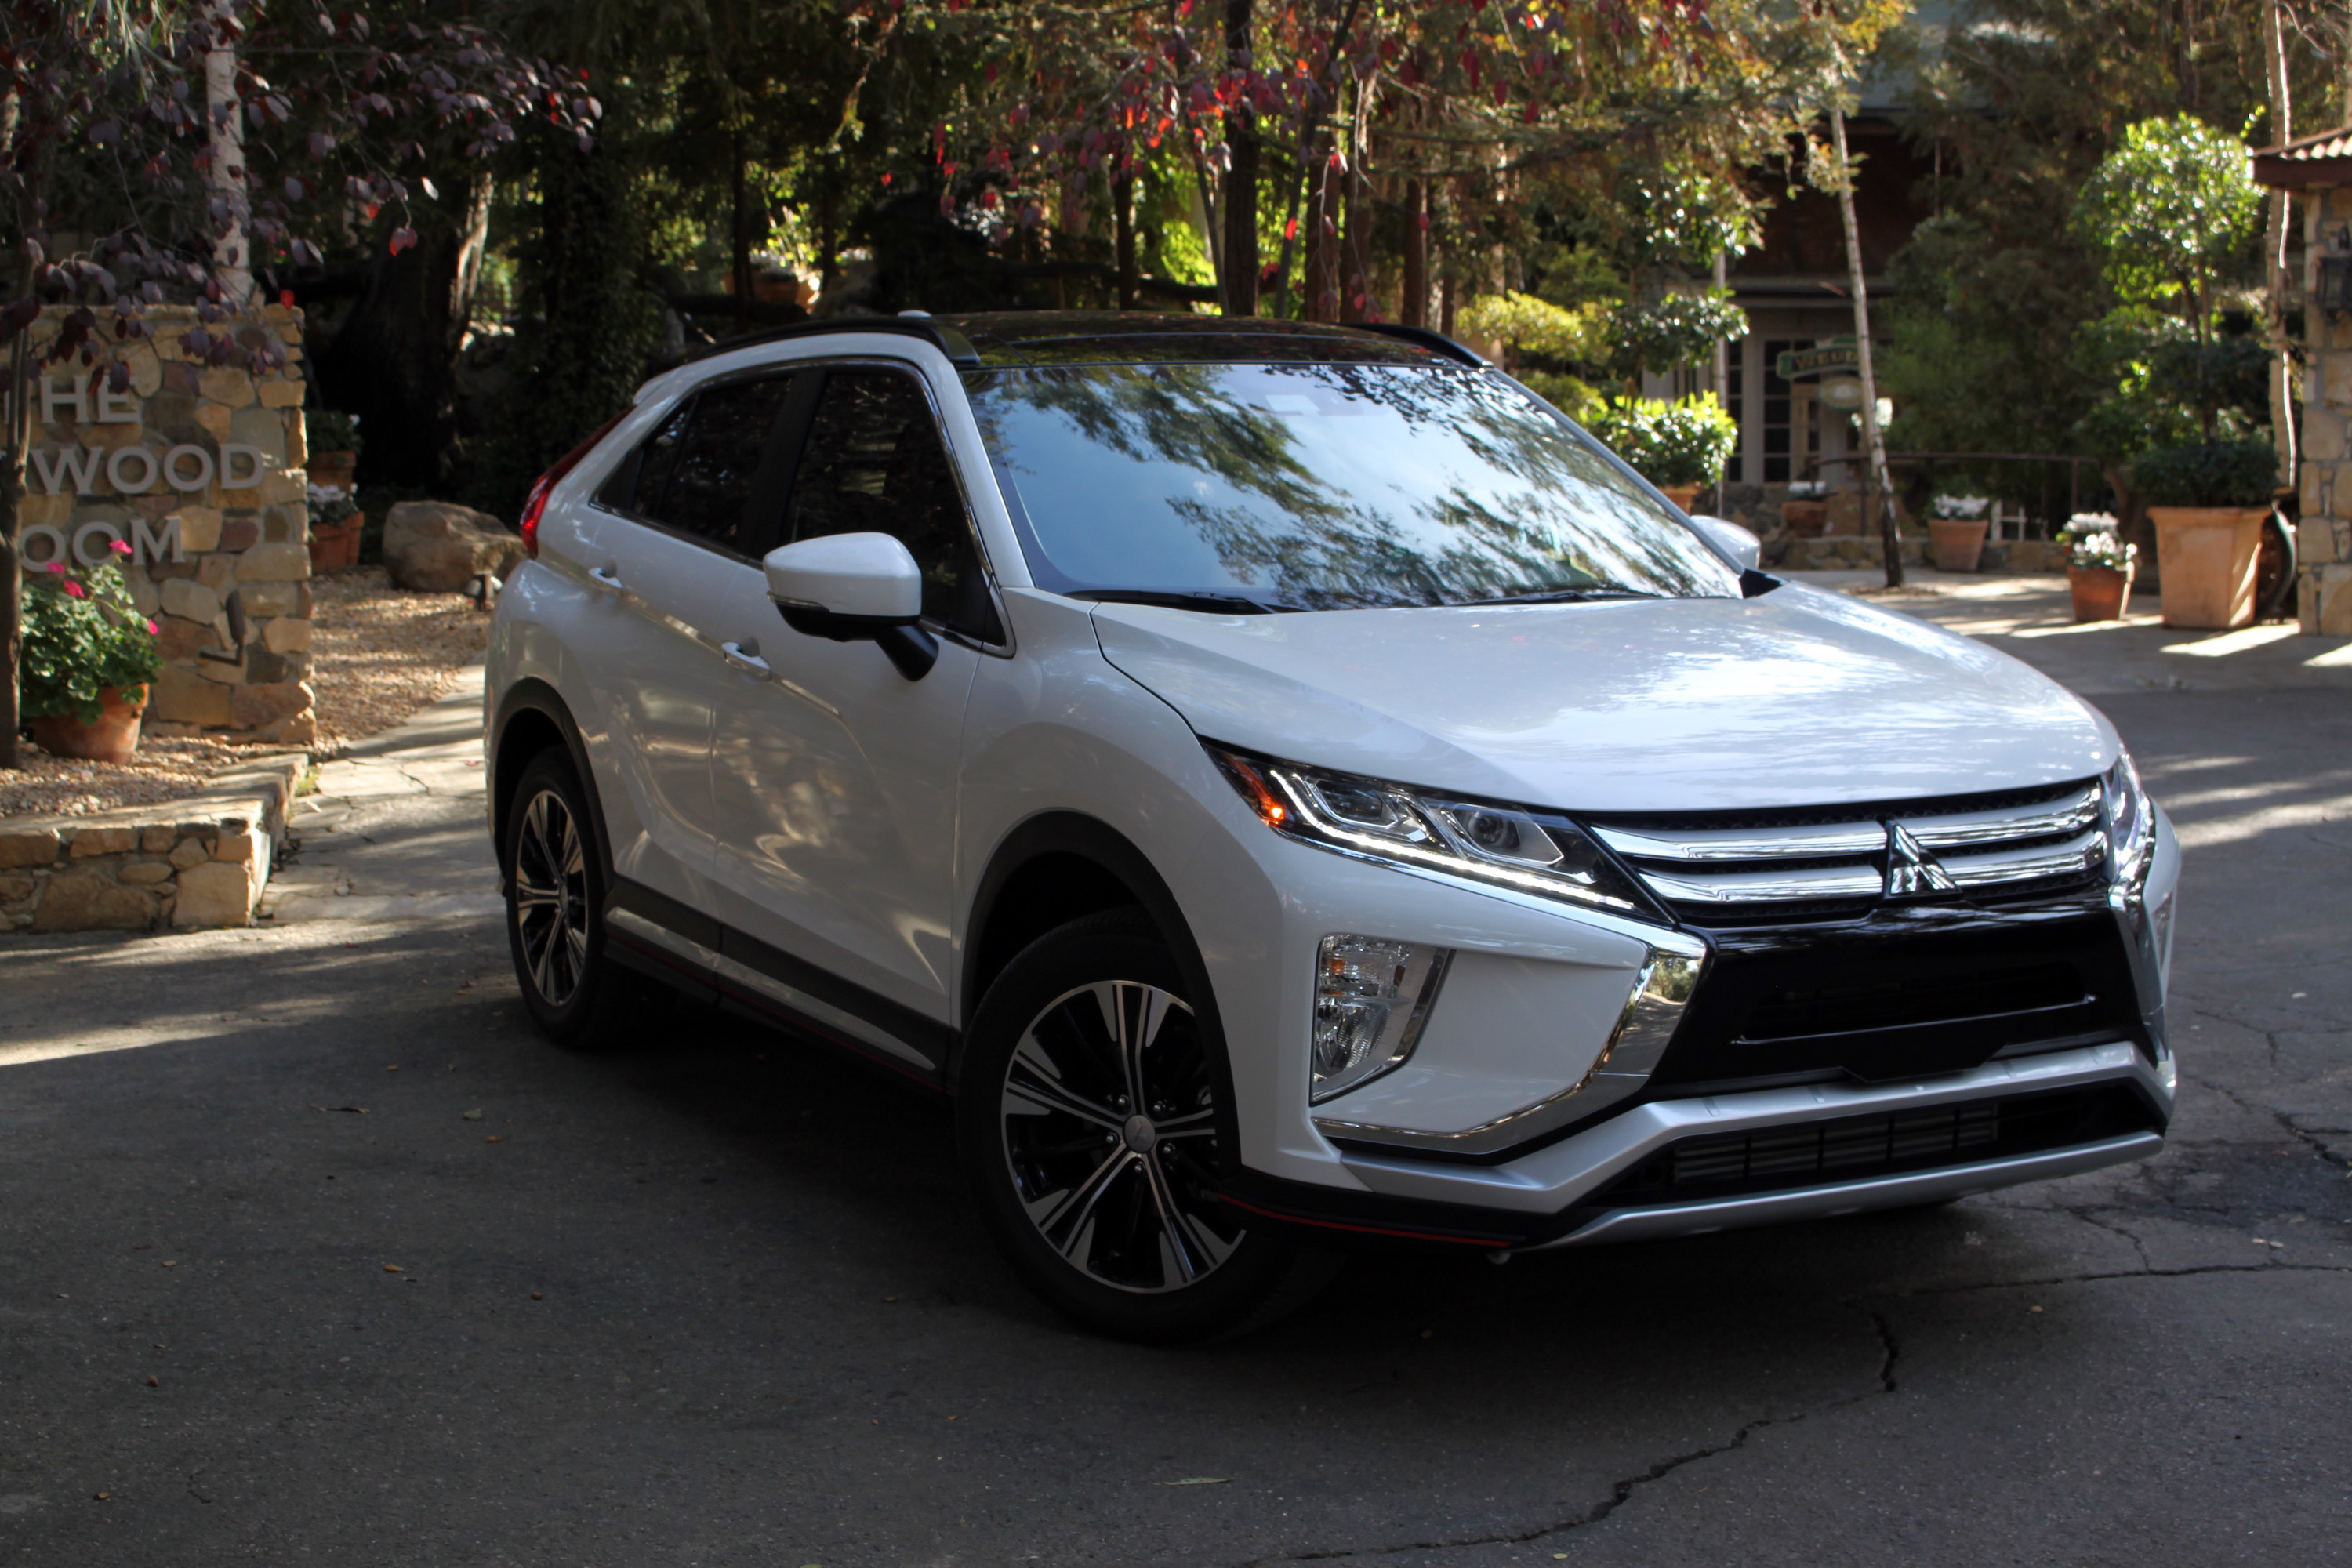 2018 mitsubishi eclipse cross pros and cons » autoguide news